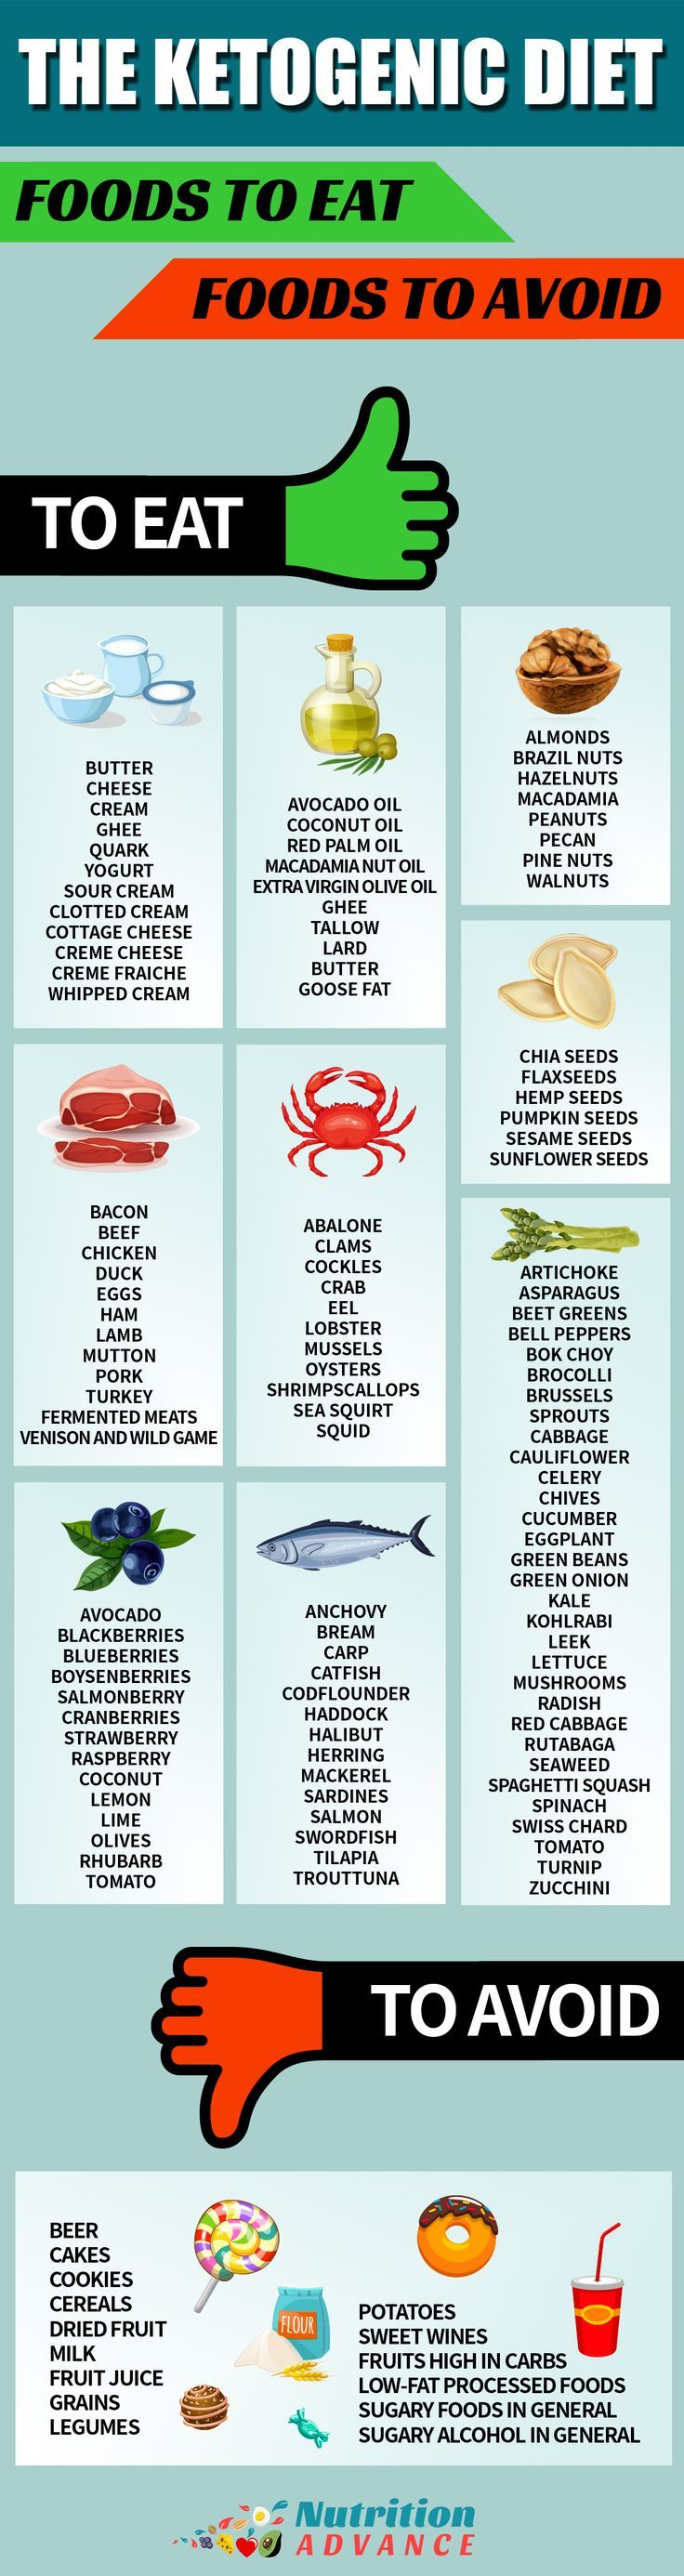 Ketogenic Diet: Foods to Eat and Foods to Avoid | This infographic shows the foods that should be emphasized on a keto diet, and the ones that are not low carb and should be avoided. | Part of the information available at: http://nutritionadvance/ketogenic-diet-ultimate-guide-to-keto | Via @nutradvance